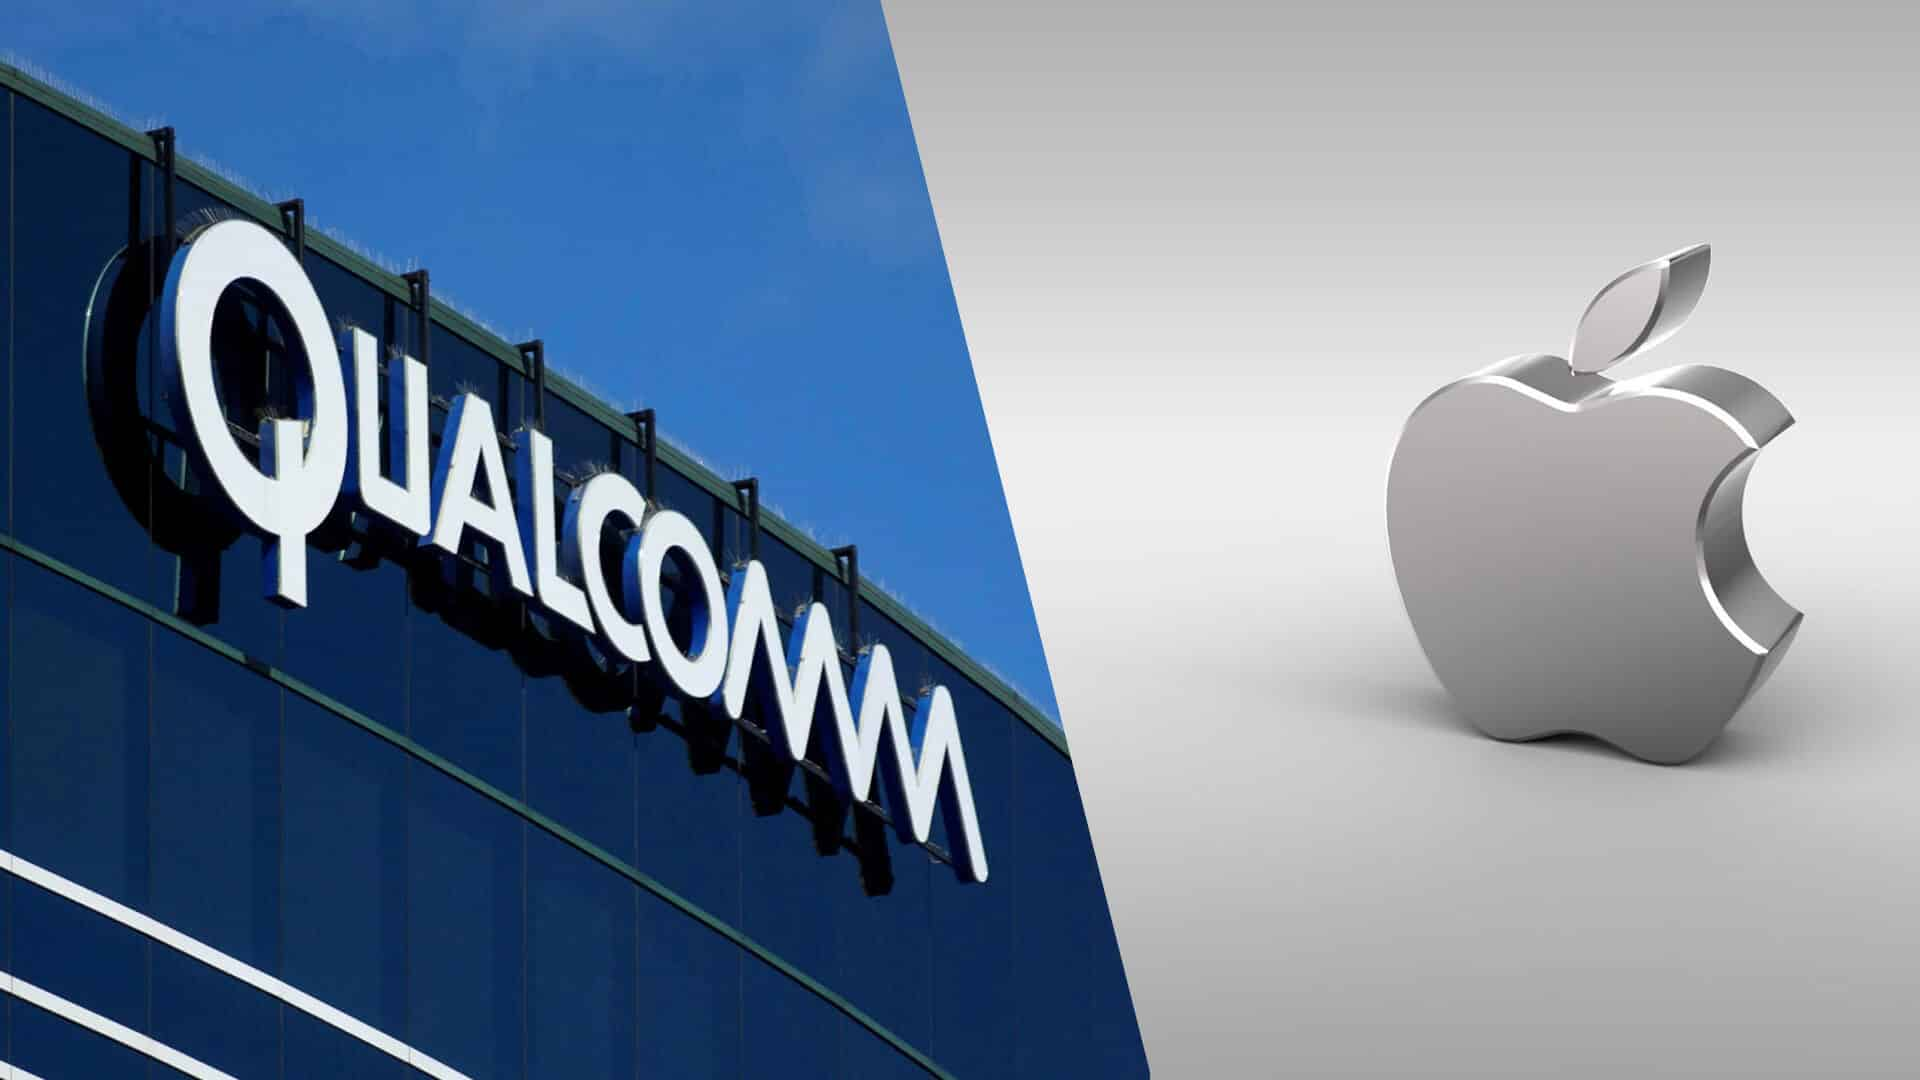 Qualcomm-Apple Battle Heats Up as Former Urges Ban on iPhone Imports